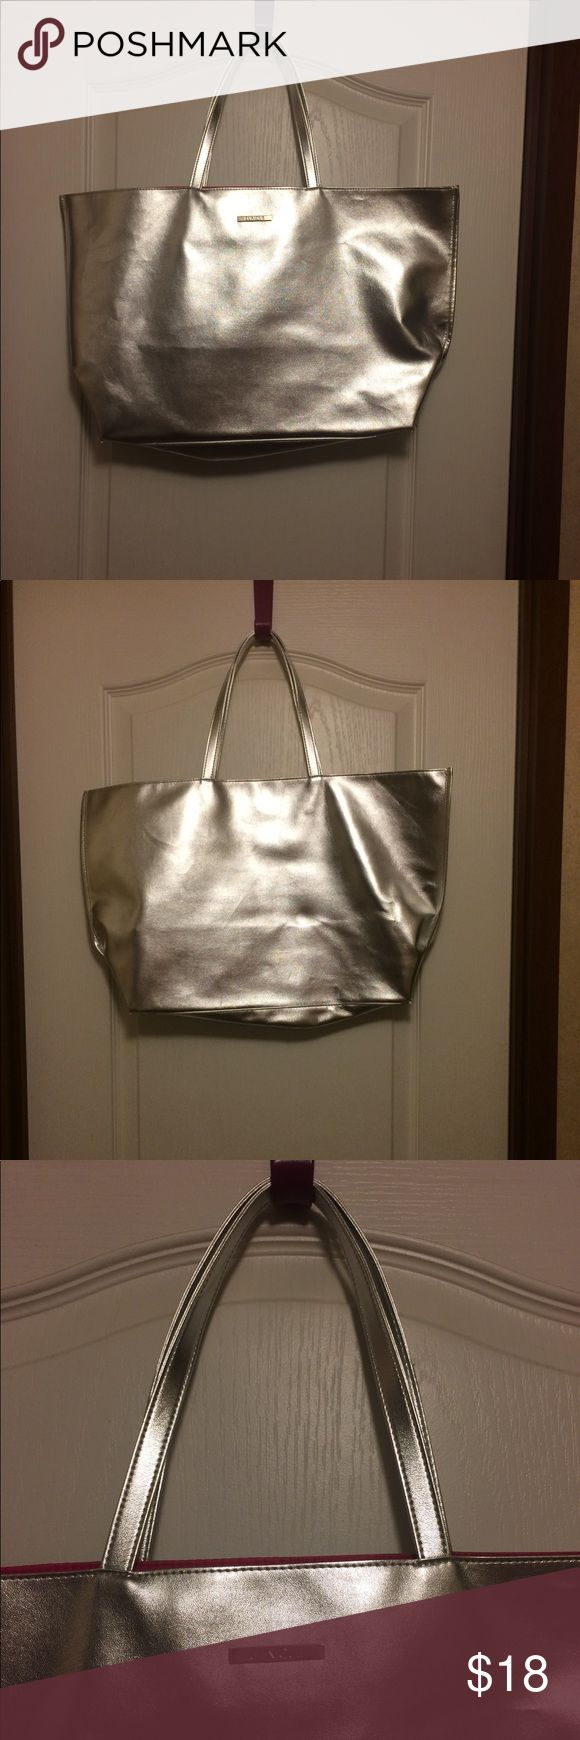 Clinique Silver Tote Bag Nice size silver Clinique tote bag. Bright pink on inside. Beautiful bag, super shiny. EUC. Clinique Bags Totes